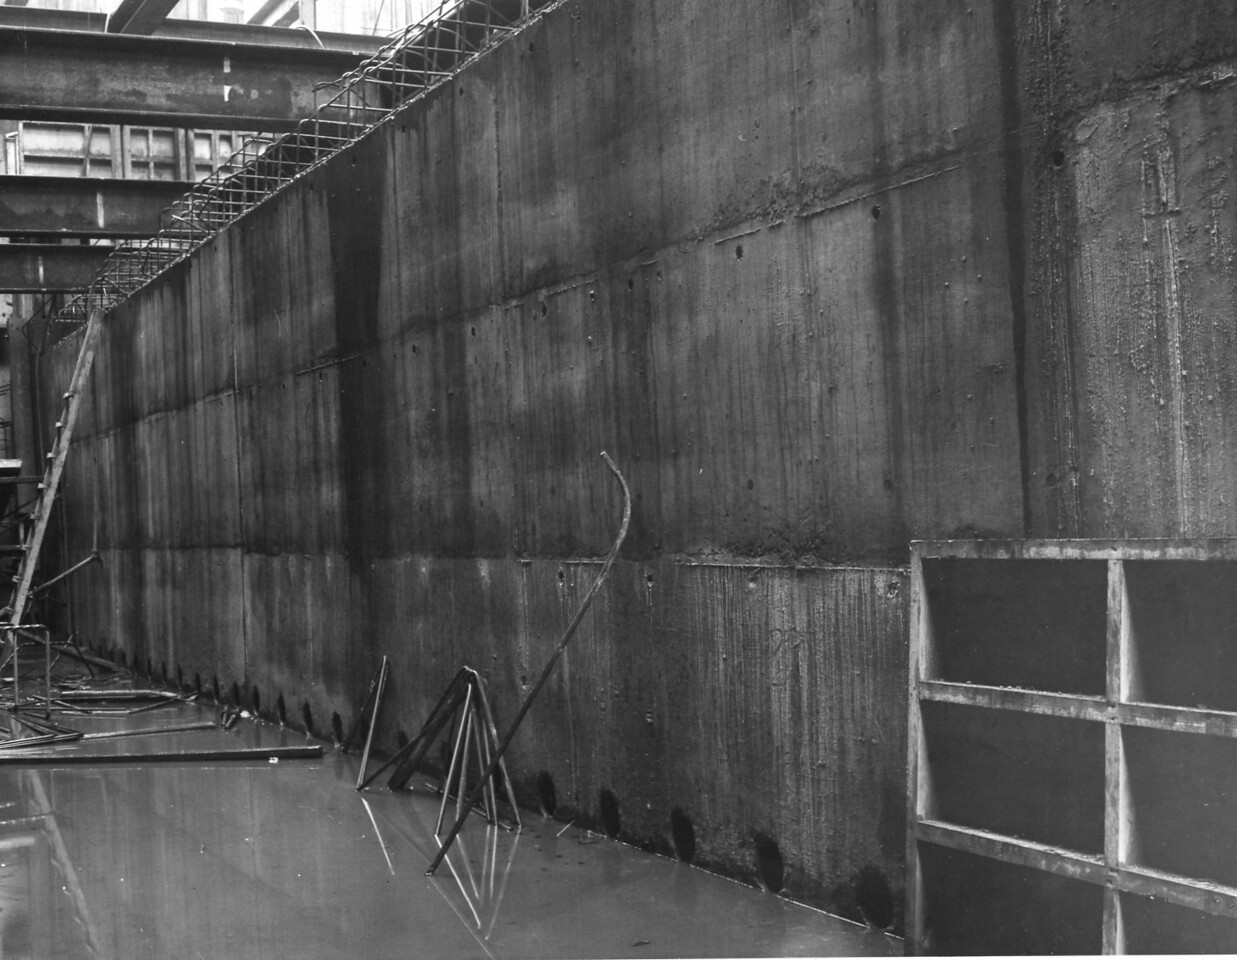 D063	Entrance works - Cill conctreted up to underside of fourth bracing frame  21/12/.1962